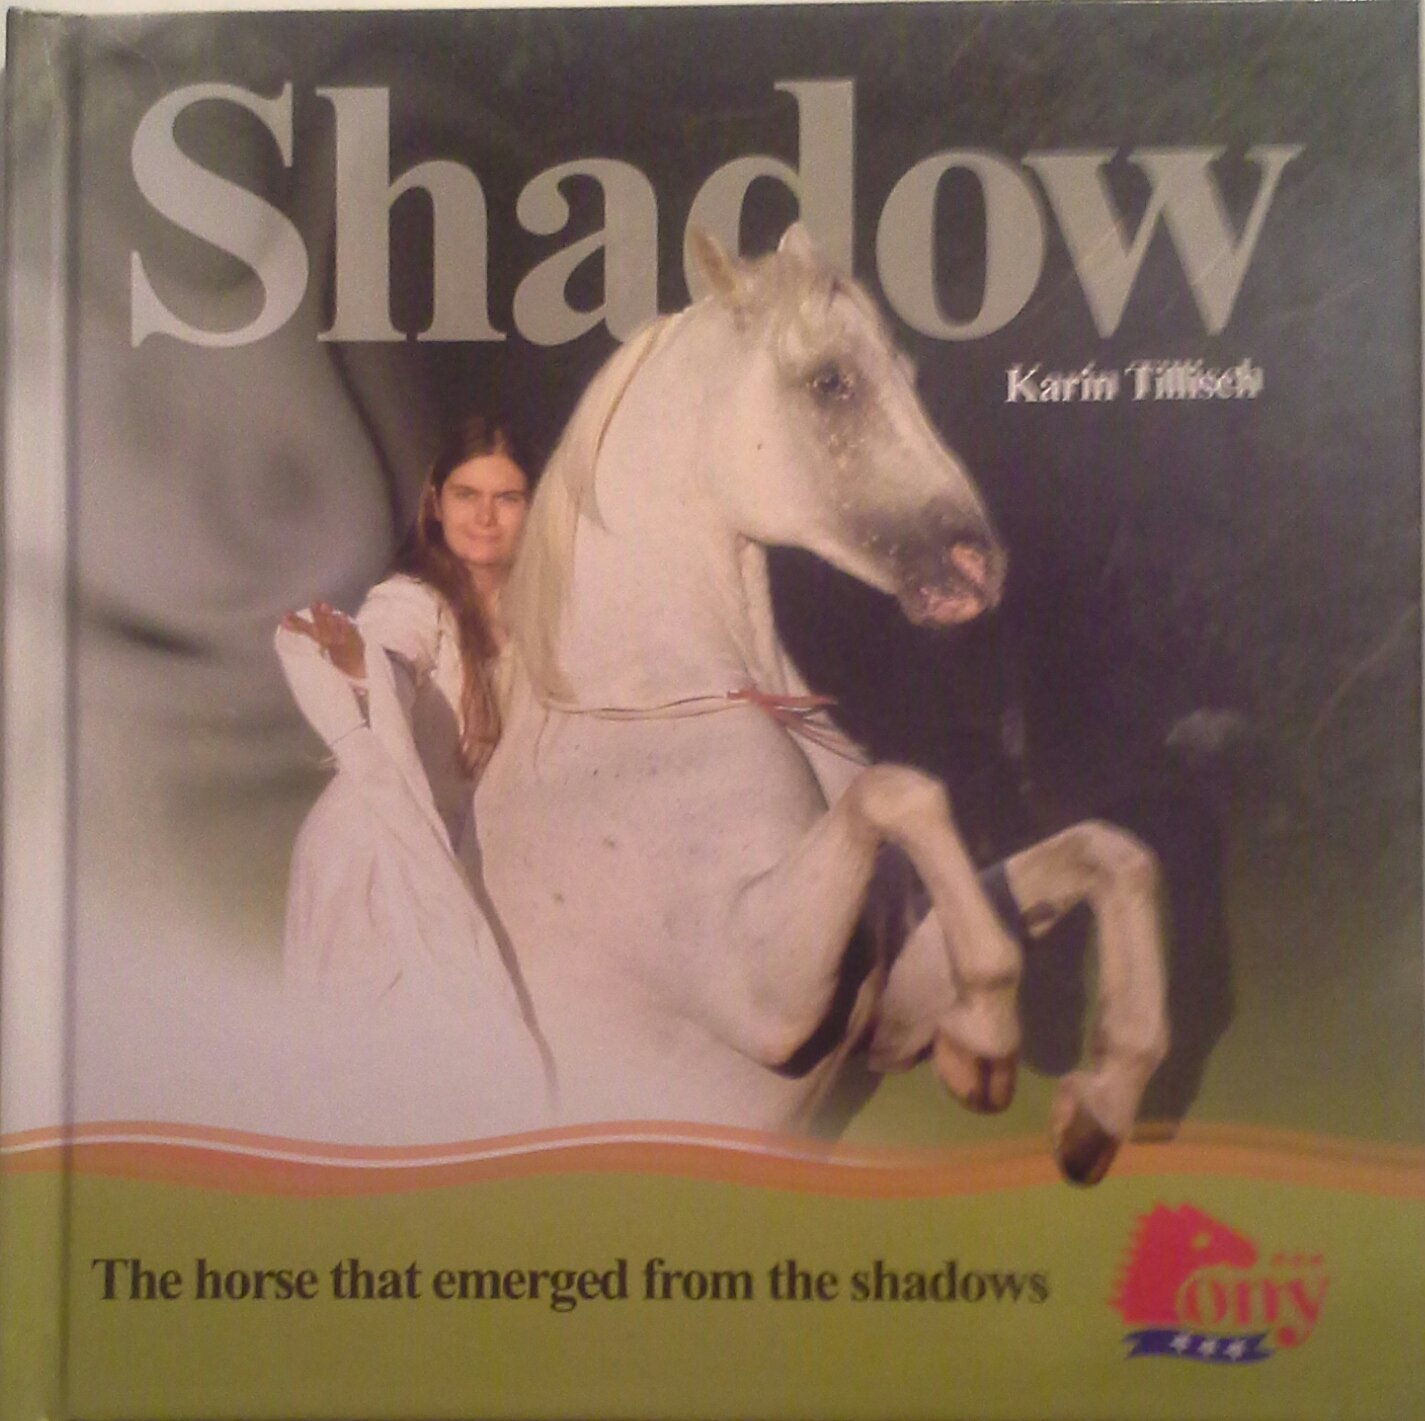 Shadow: The Horse That Emerged from the Shadows